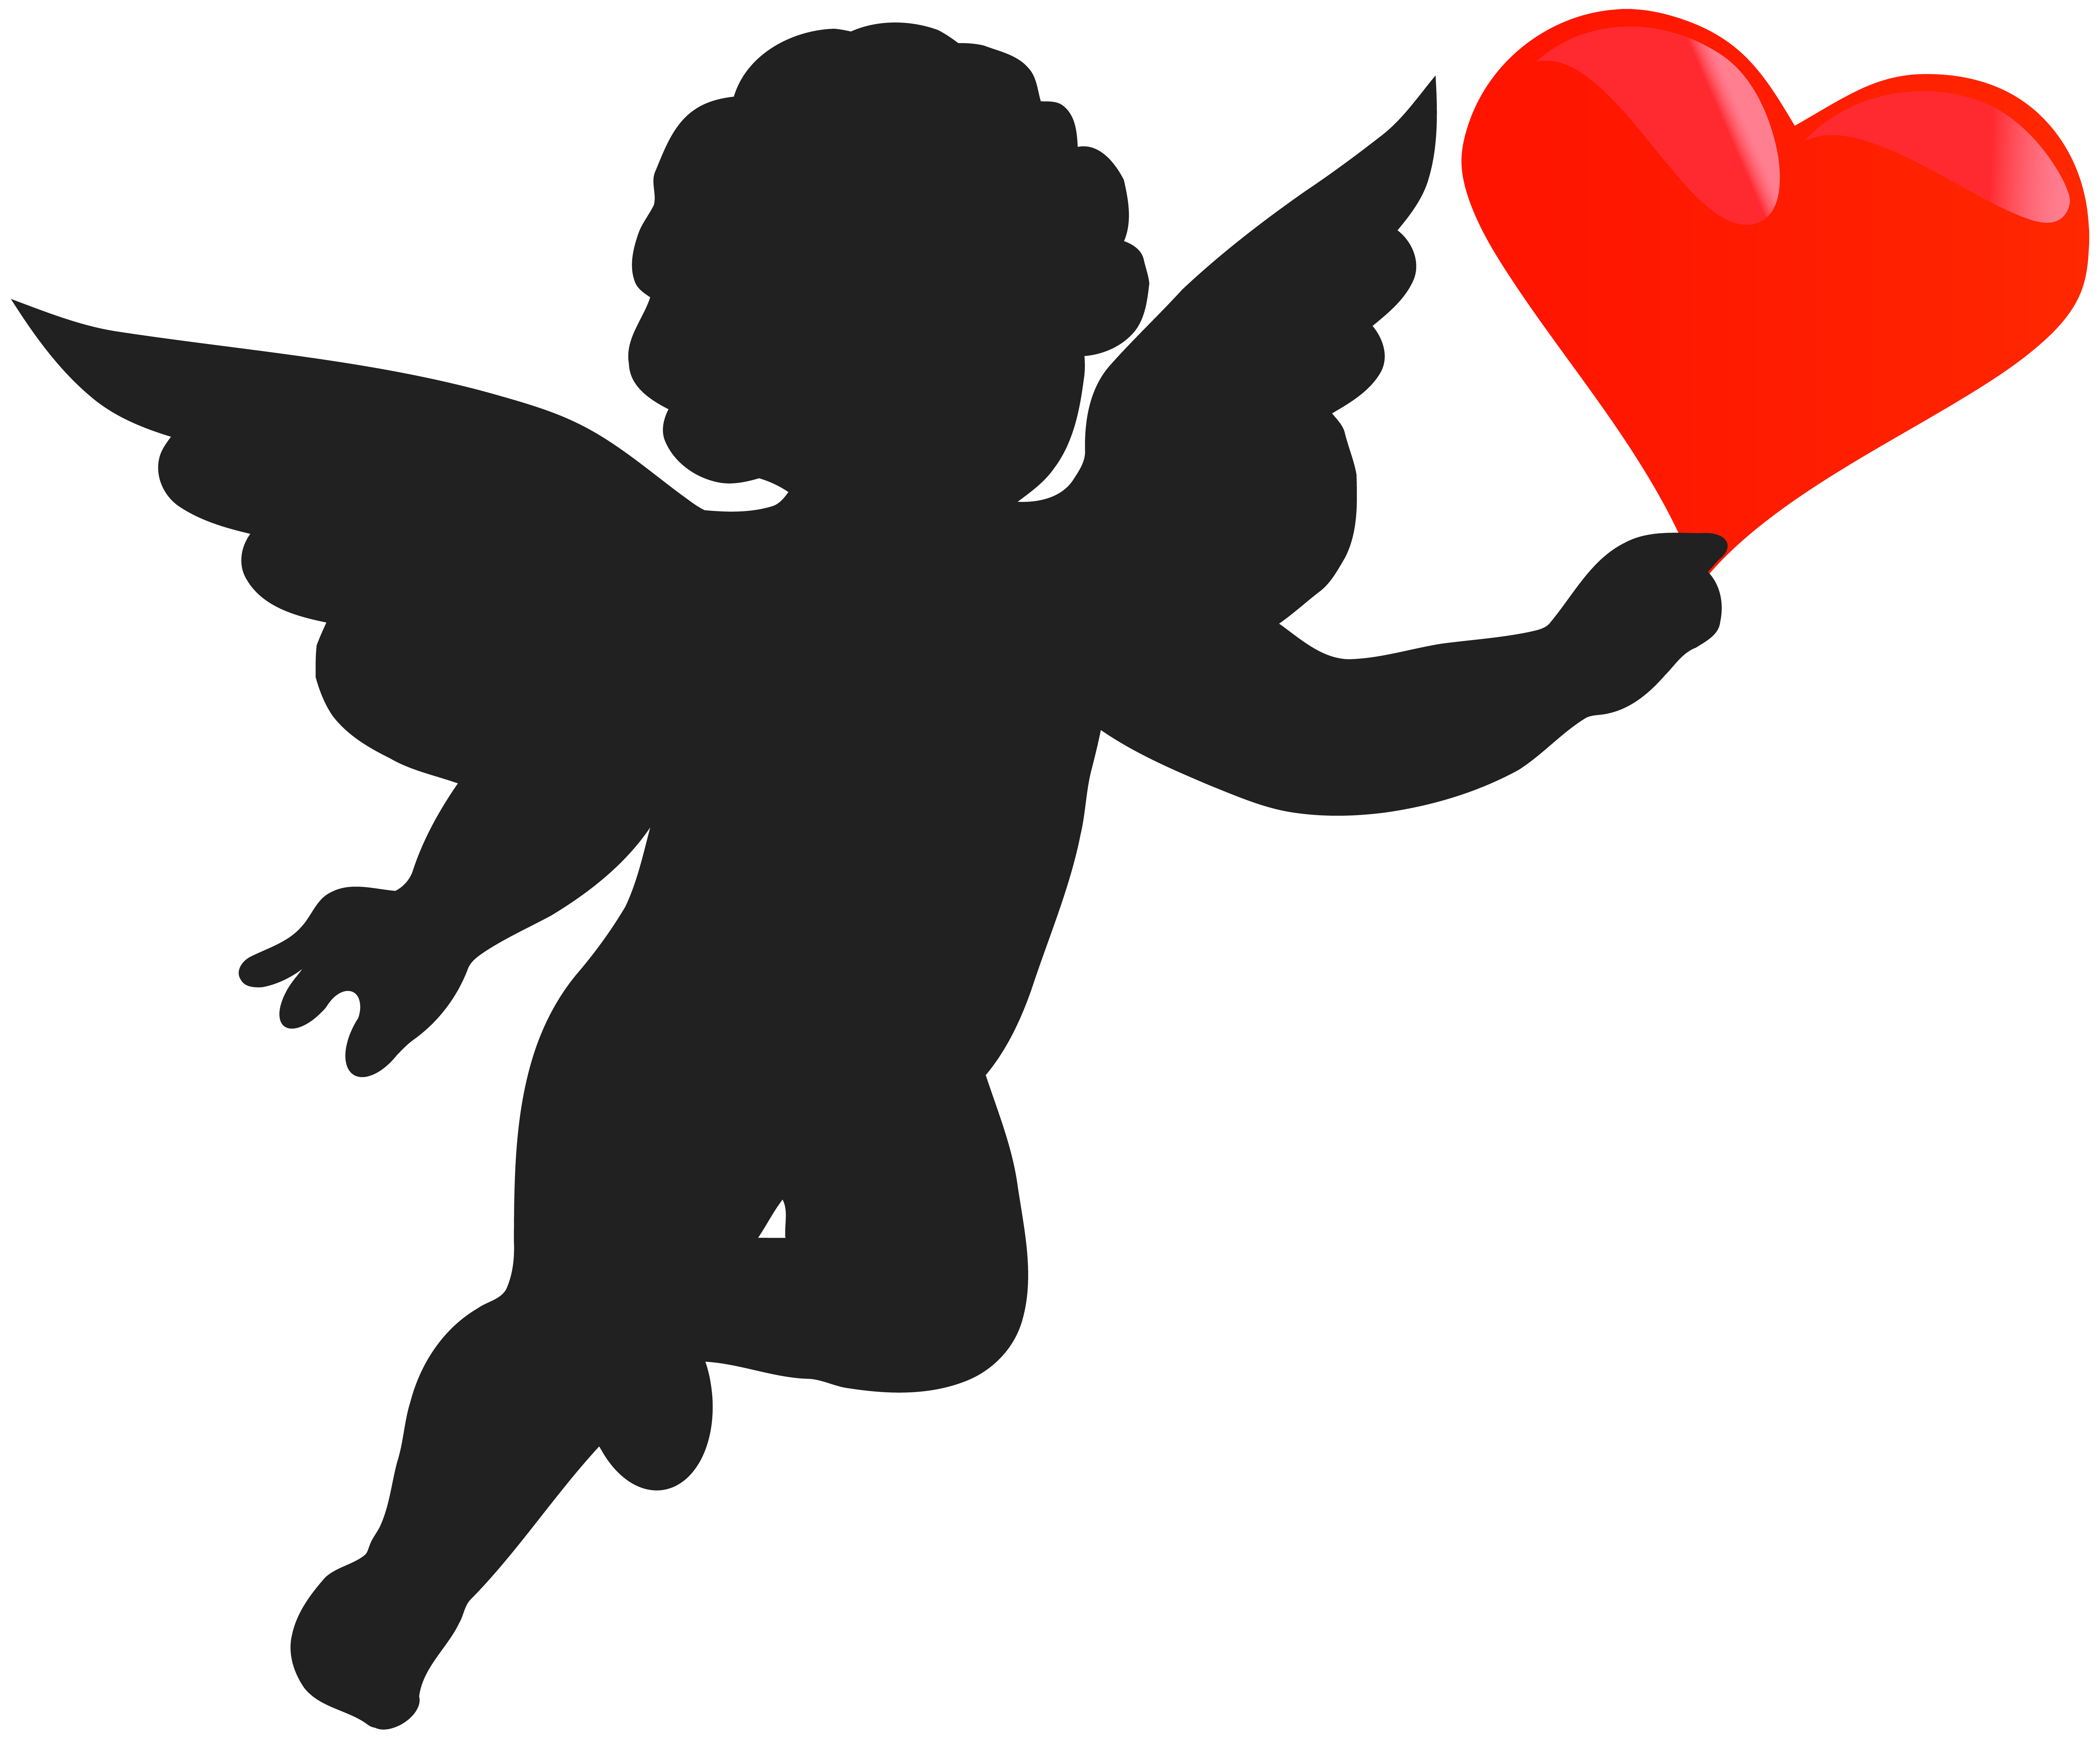 cupid png